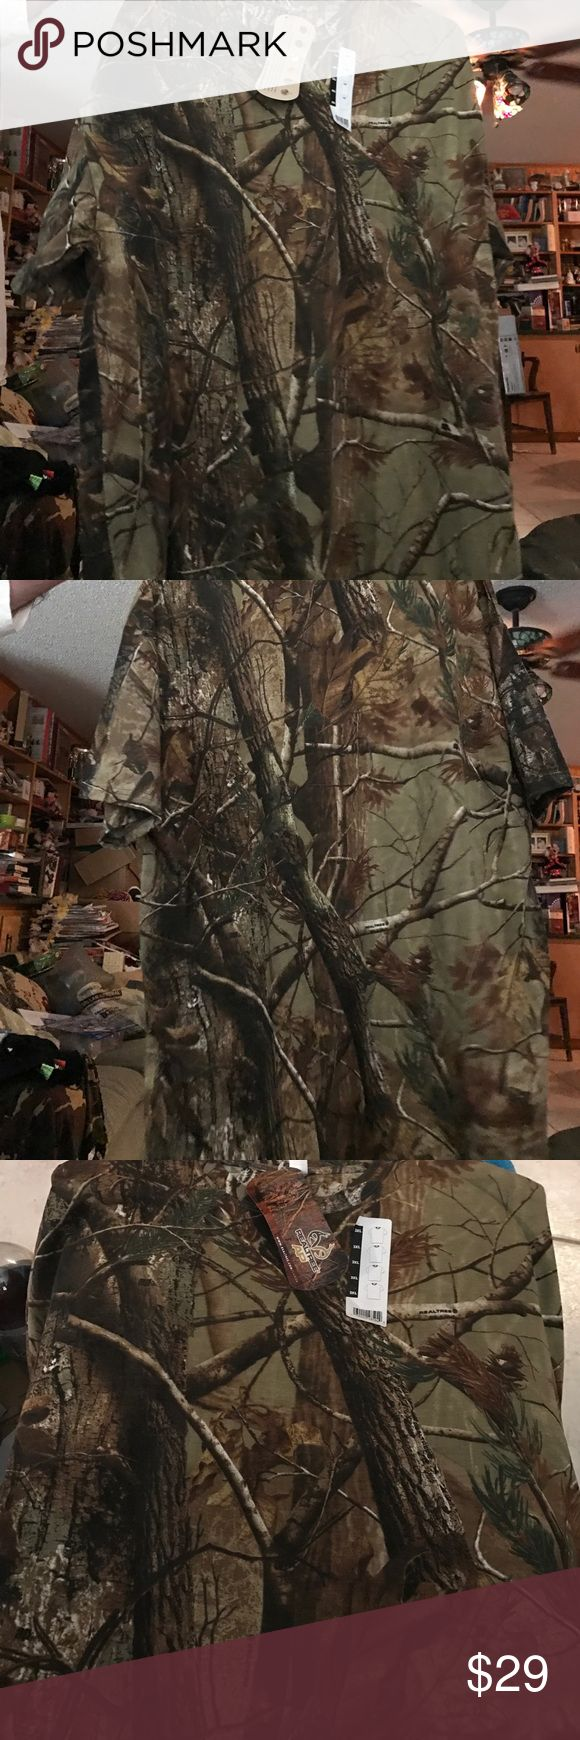 Men's 3X real tree Hunter's camo T-shirt This is the famous real tree brand camo shirt. The camo is a real tree design meeting it looks like real trees look at the picture it's real trees. This is a 3XL or 3X man's shirt but would also fit a woman of a large size or if she wants to sleep in it. Great for when hunting deer. Realtree Shirts Tees - Short Sleeve